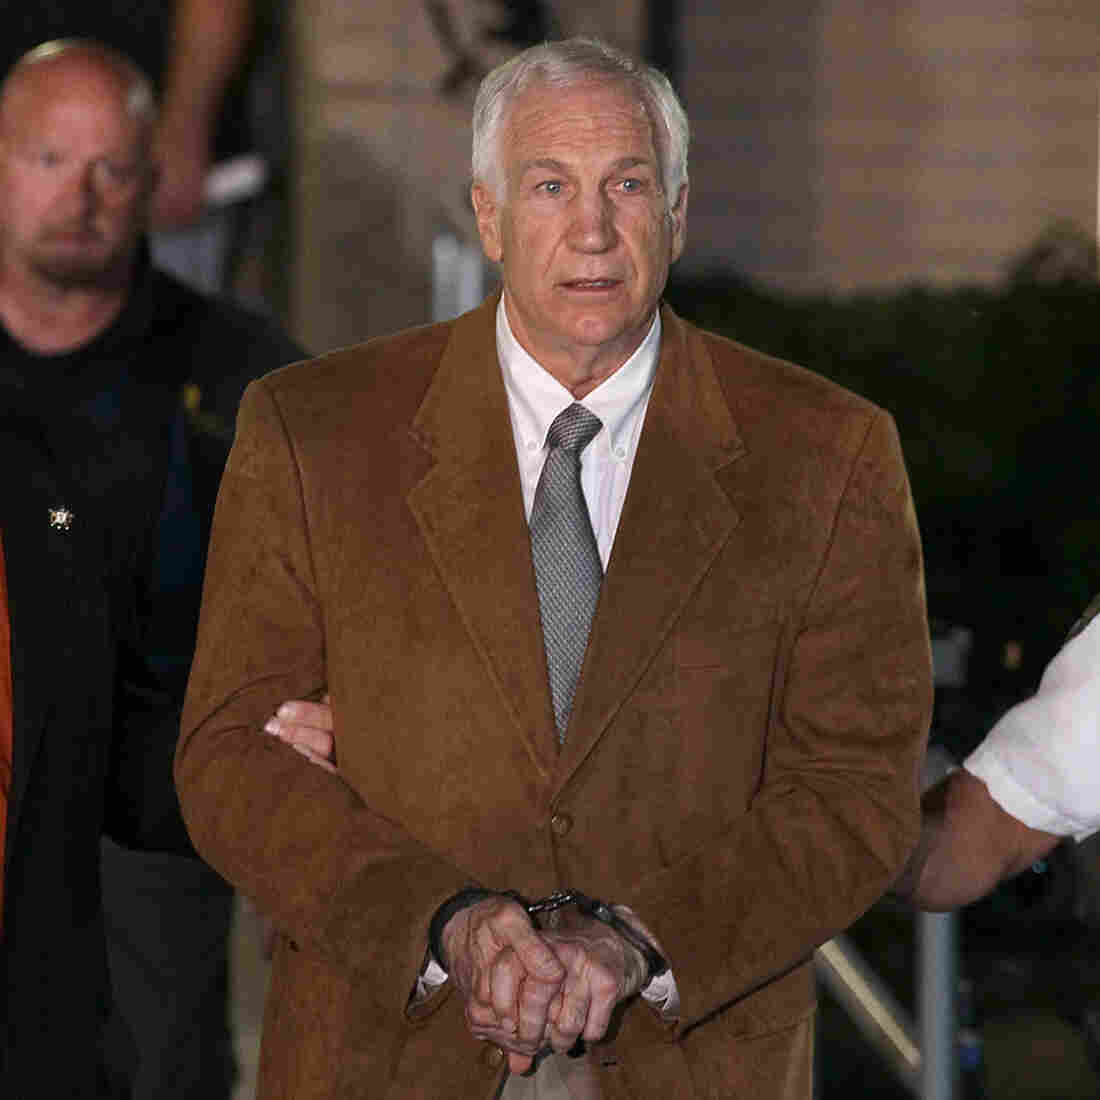 'Who Would Believe A Kid?' The Sandusky Jury